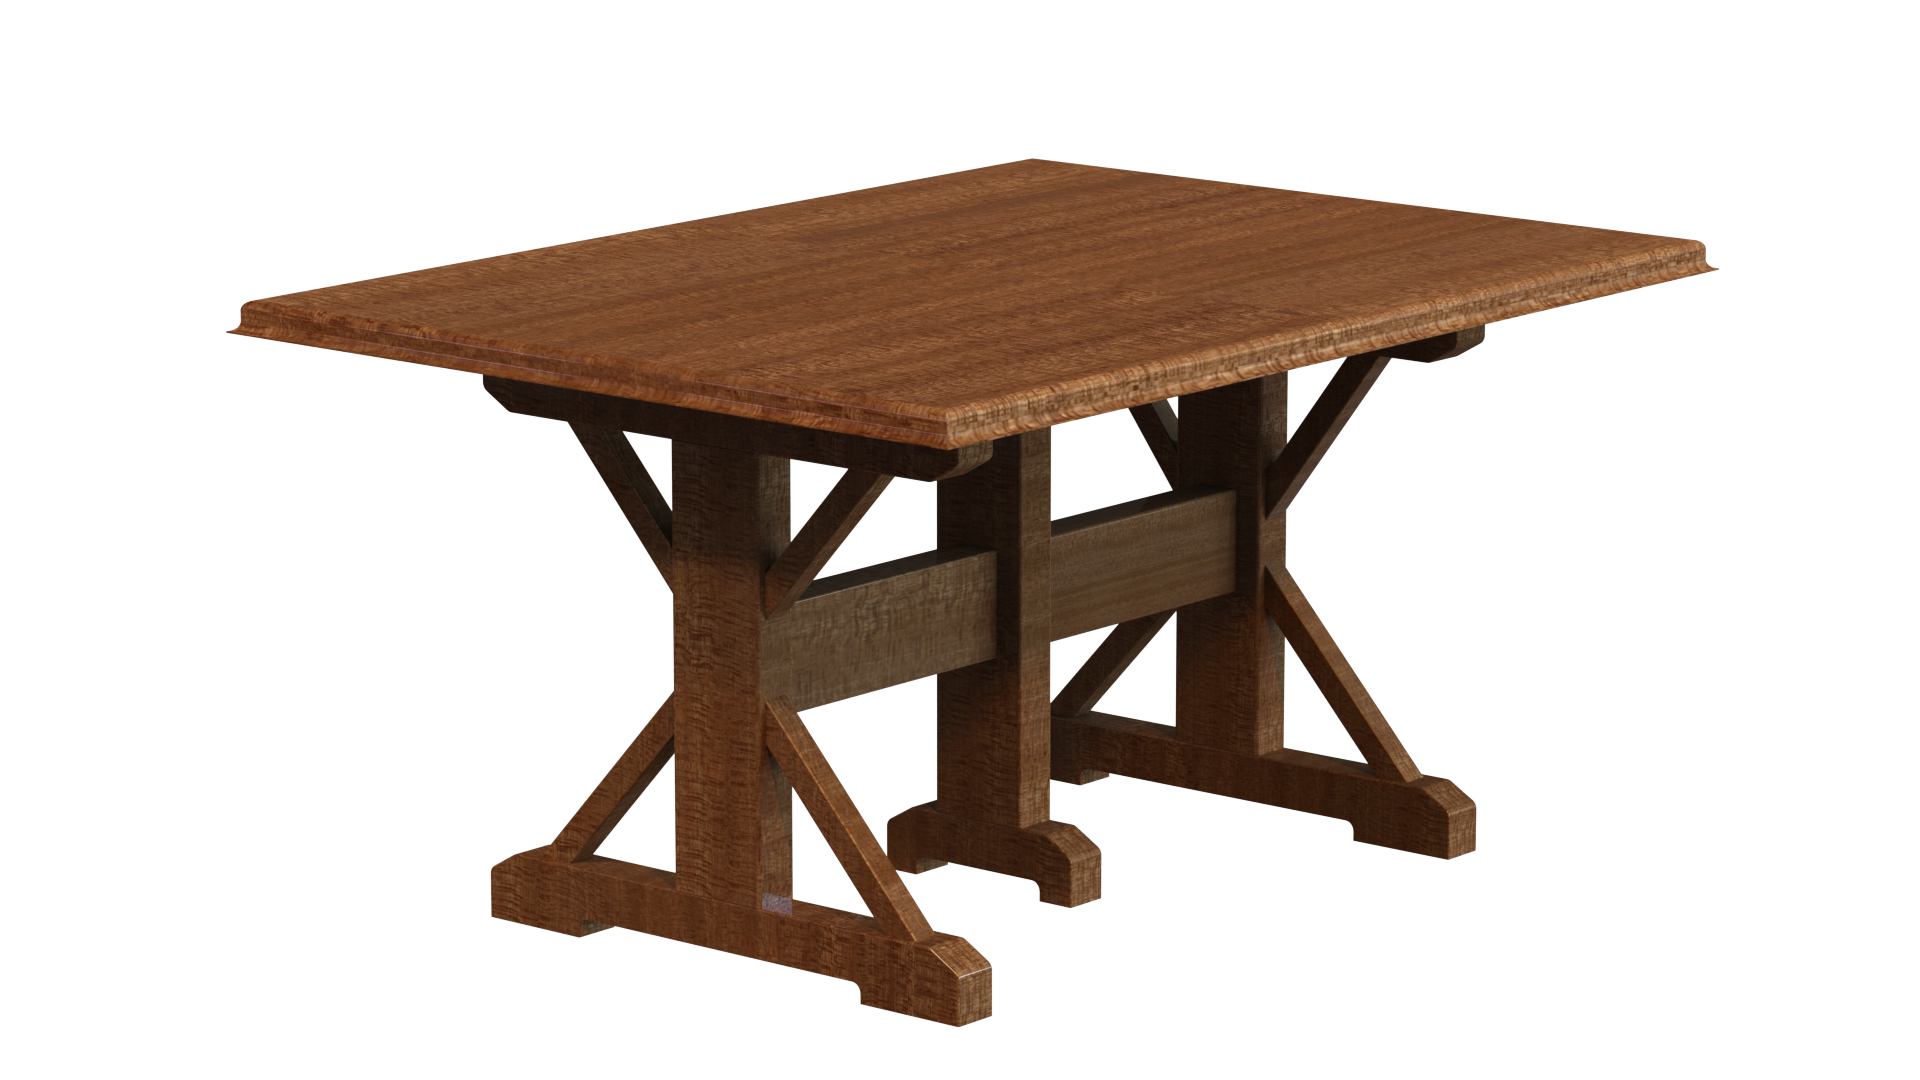 Available Tables In Solidworks Drawings